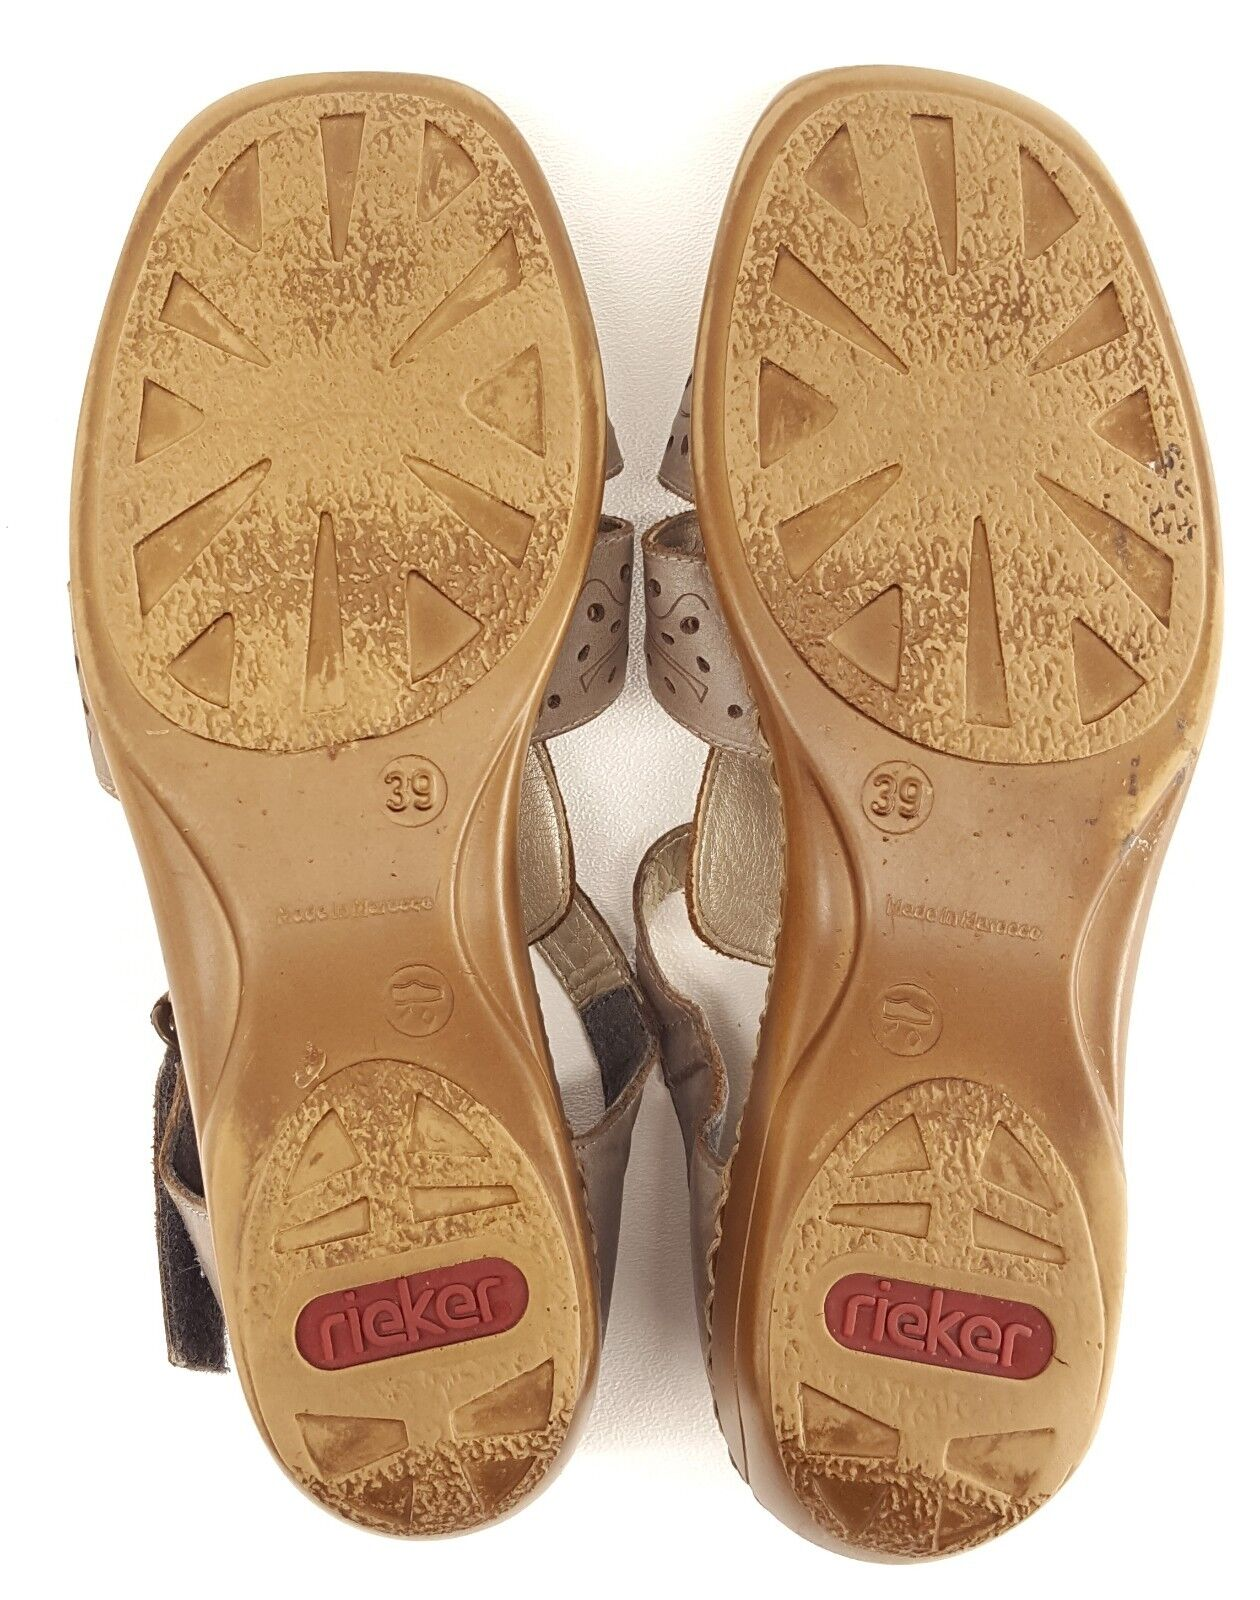 Rieker femmes comfort chaussures 39 T-strap mary mary mary jane sandals leather cutouts taupe ffa346